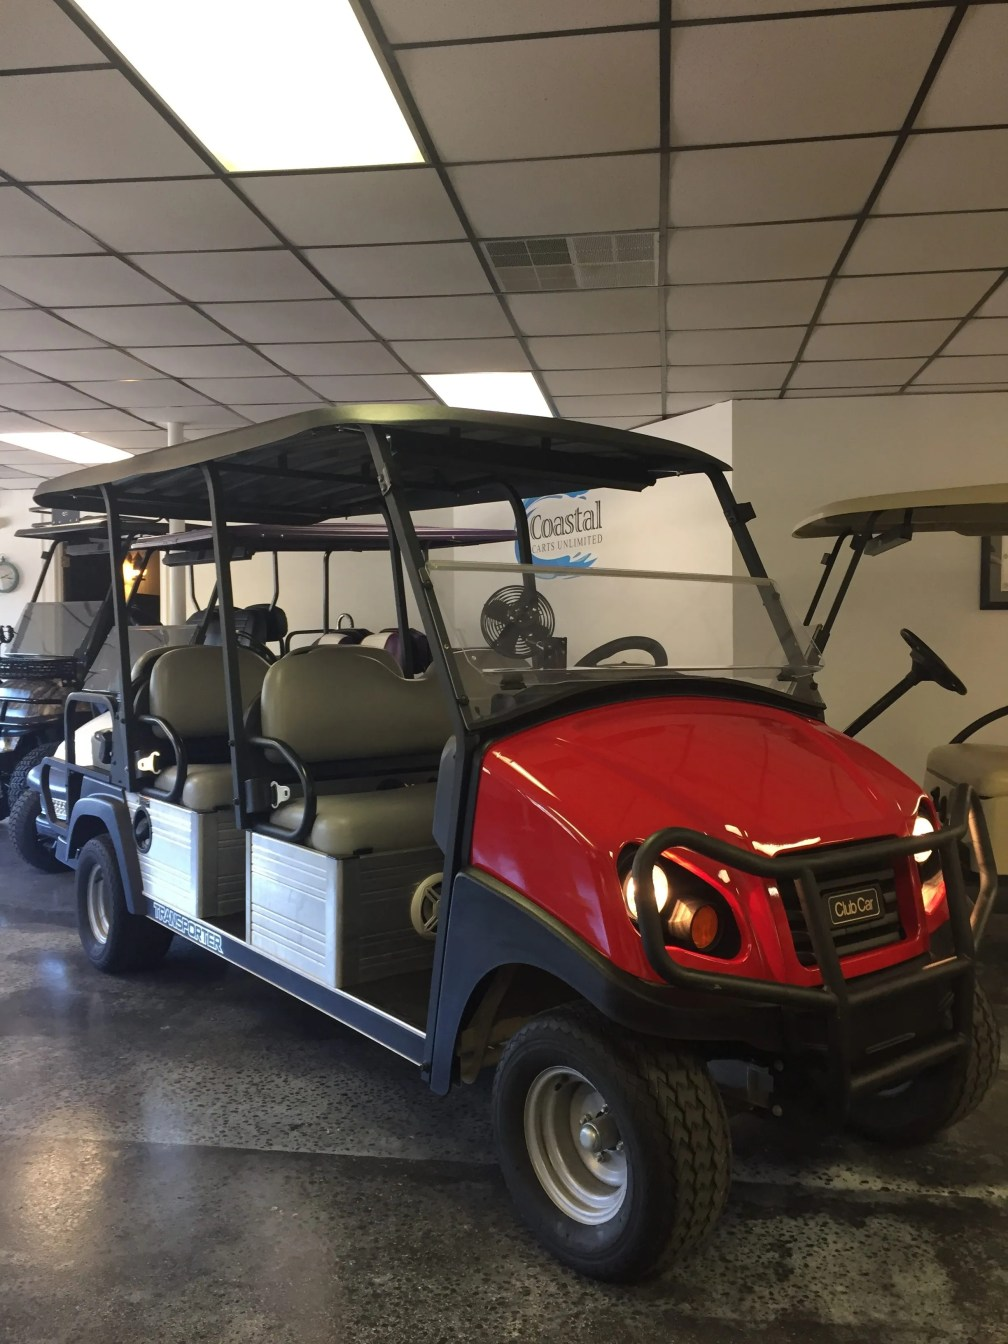 Shuttle Club Car- Coastal Carts unlimited